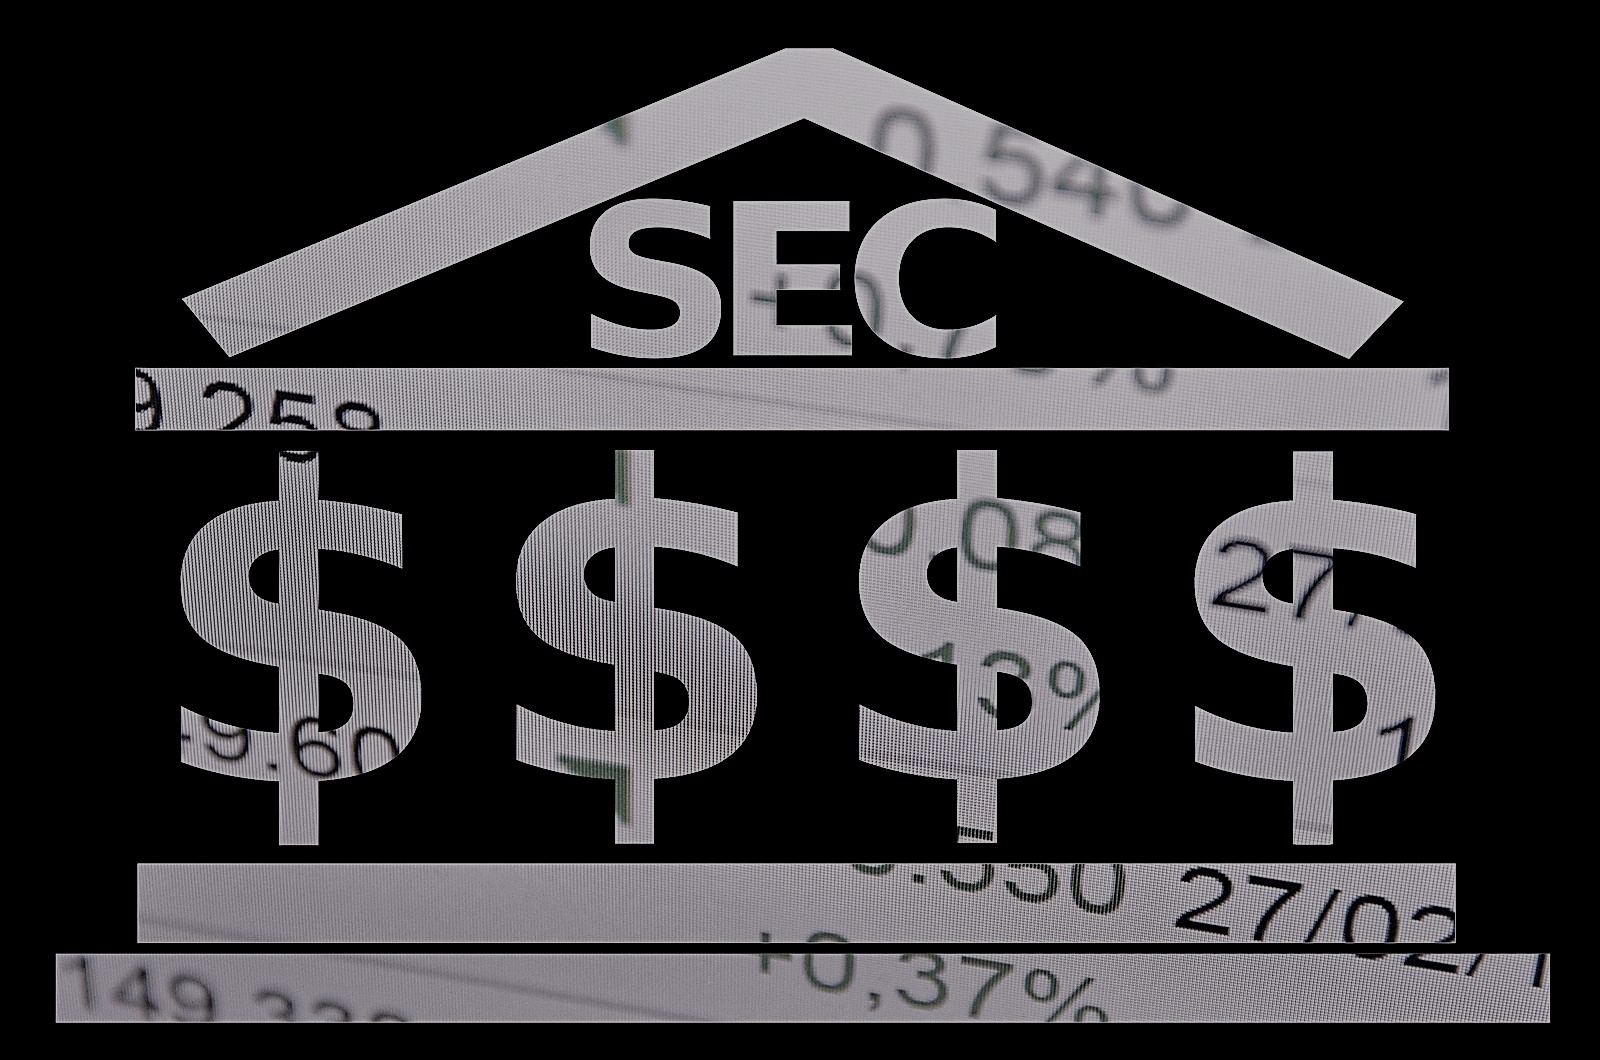 Image depicting SEC fraud REPORT SEC FRAUD Securities fraud, also known as stock fraud and investment fraud, is a deceptive practice in the stock or commodities markets. SEC fraud that induces investors to make, purchase, or sale sell decisions on the basis of false information and in violation of securities laws, frequently resulting in losses. , in violation of securities laws. The FCPA (Foreign Corruption Protection Act) falls under the purview of the SEC?. The FCPA rewards SEC whistleblowers for reporting any payment made to any domestic or international government official in exchange for access to business deals or favorable treatment in a contract bid. Regardless of the size of the payment, it is considered a bribe and the government will seek damages up to three times the value of the contract or profit made as a result of the bribe. The Securities and Exchange Commission has awarded more than $250 million to SEC whistleblowers since the inception of the agency's whistleblower program in 2011. Commission weighs various factors about a whistleblower's contribution and assistance. *SEC Whistleblower Awards rewards range from 10- to 30% percent of money collected in a case.*